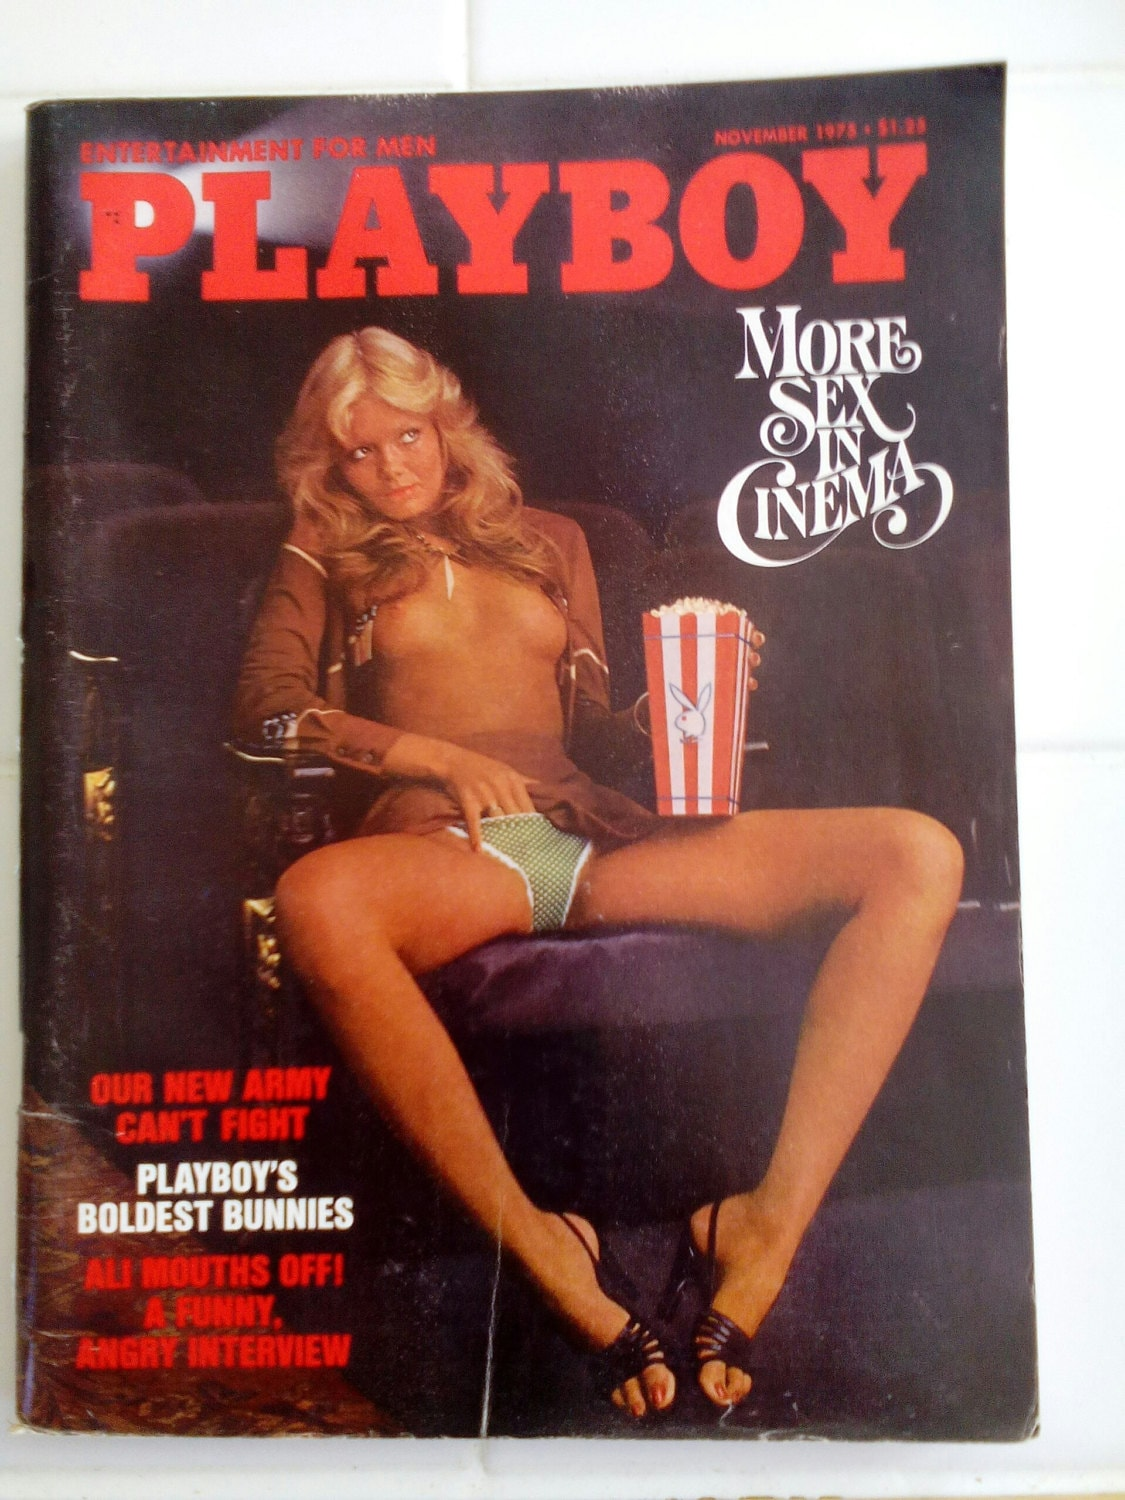 the playboy magazine Find playboy magazine stock images in hd and millions of other royalty-free stock photos, illustrations, and vectors in the shutterstock collection thousands of new.